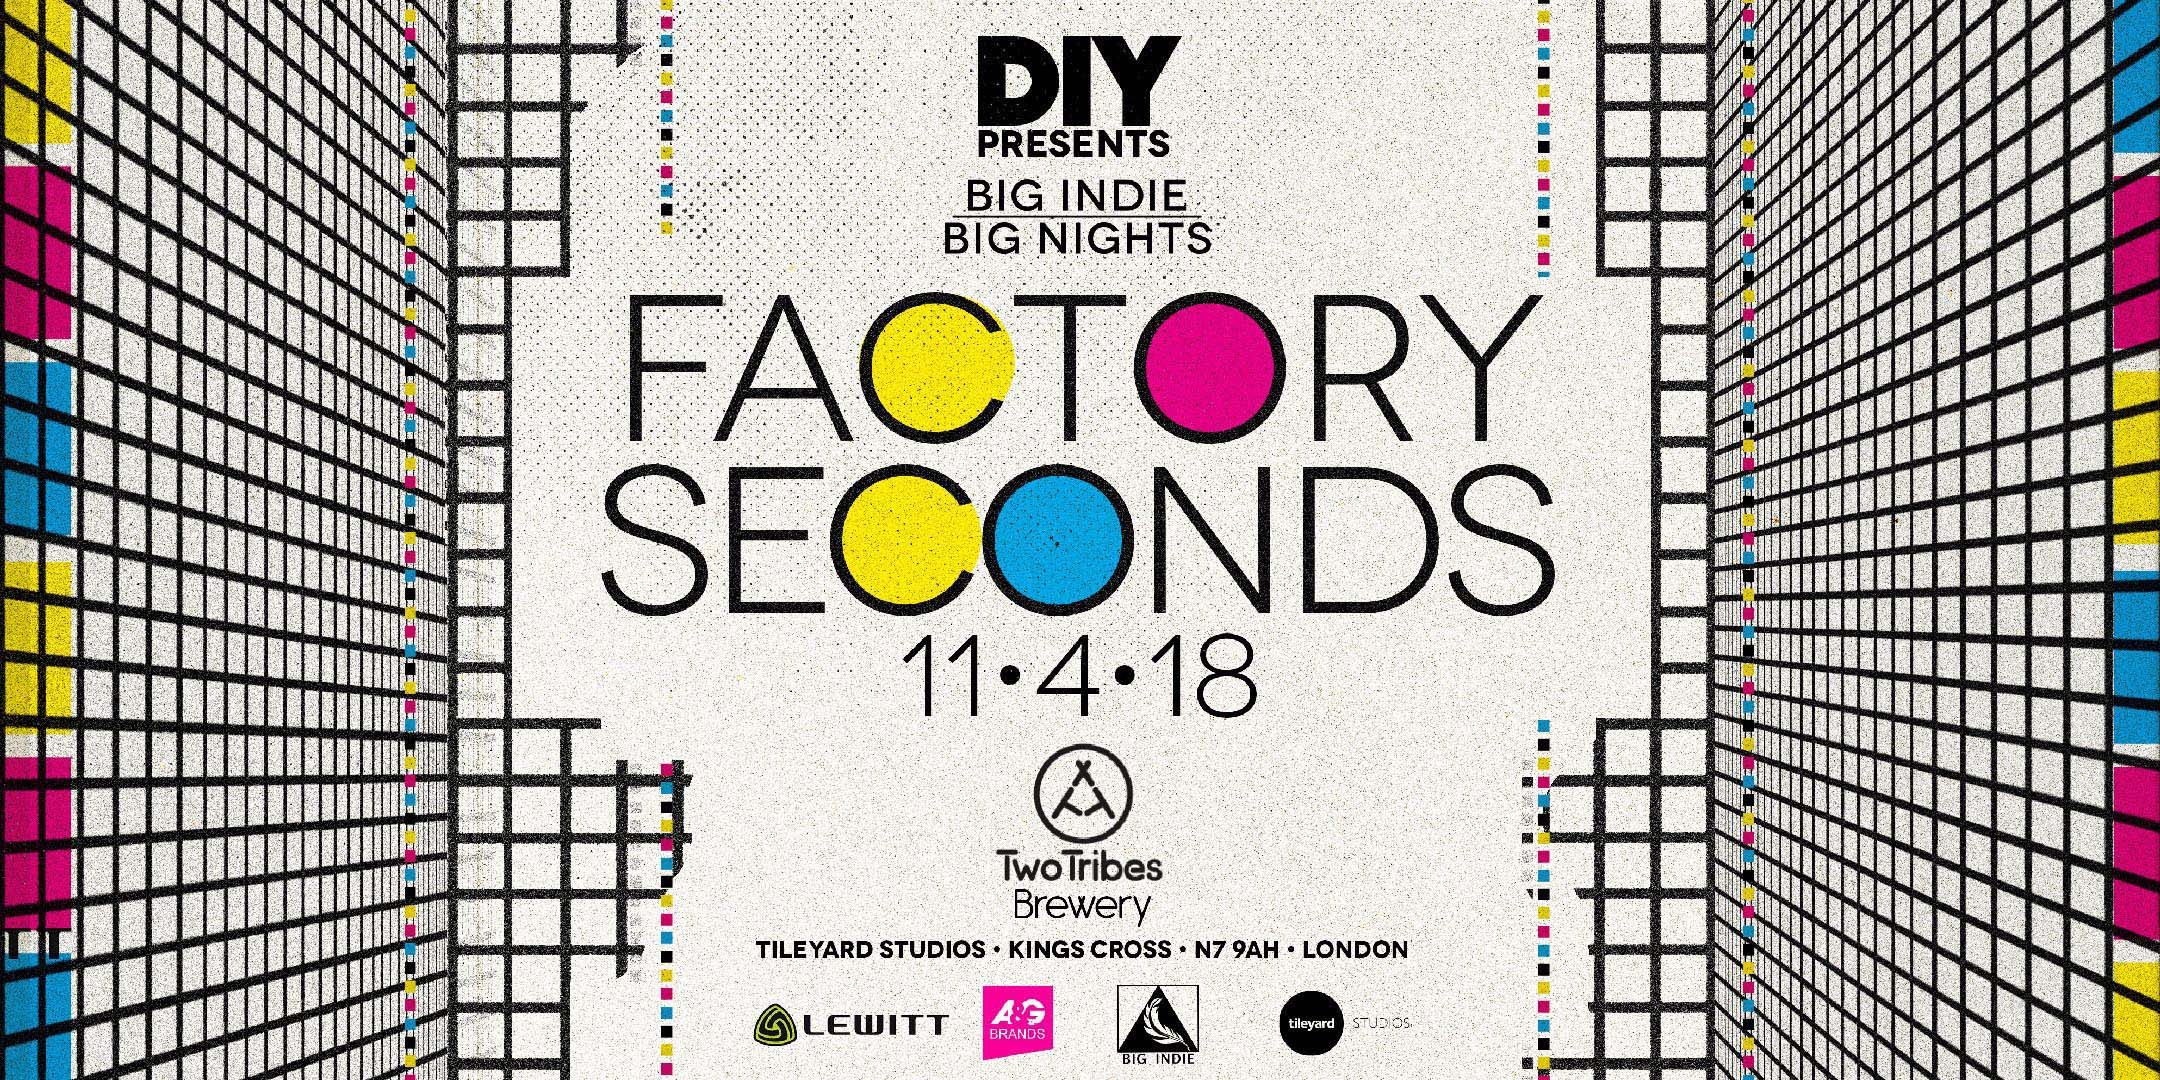 DIY are teaming up with Big Indie for a series of new band shows, starting with Factory Seconds!